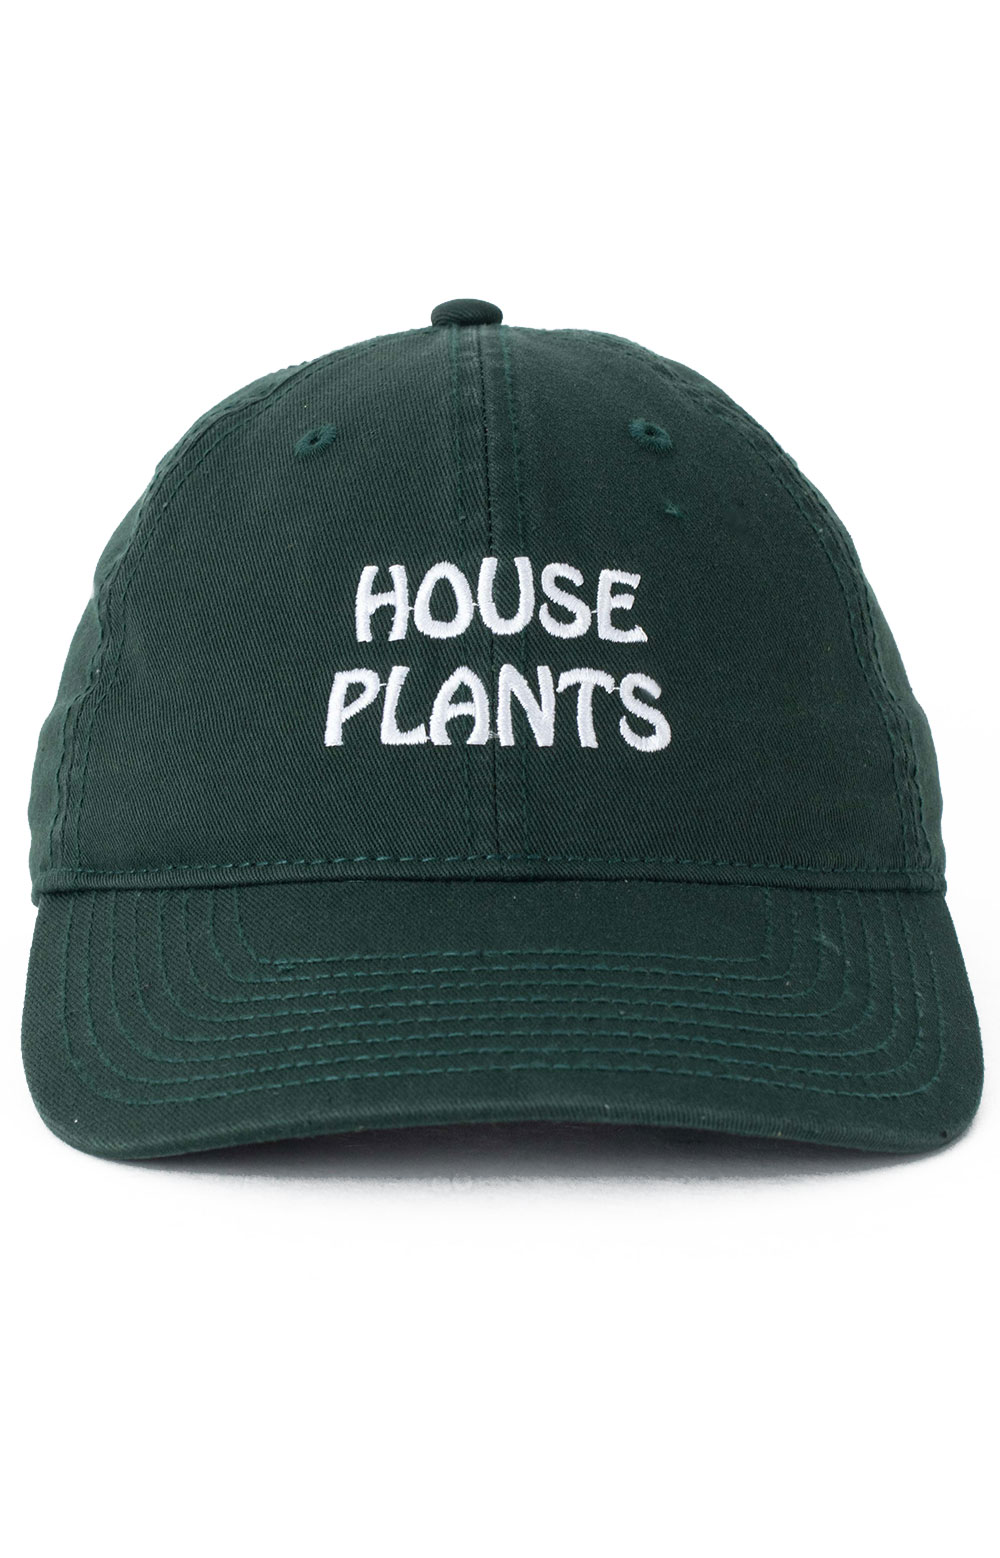 House Plants Dad Hat - Forest Green  2